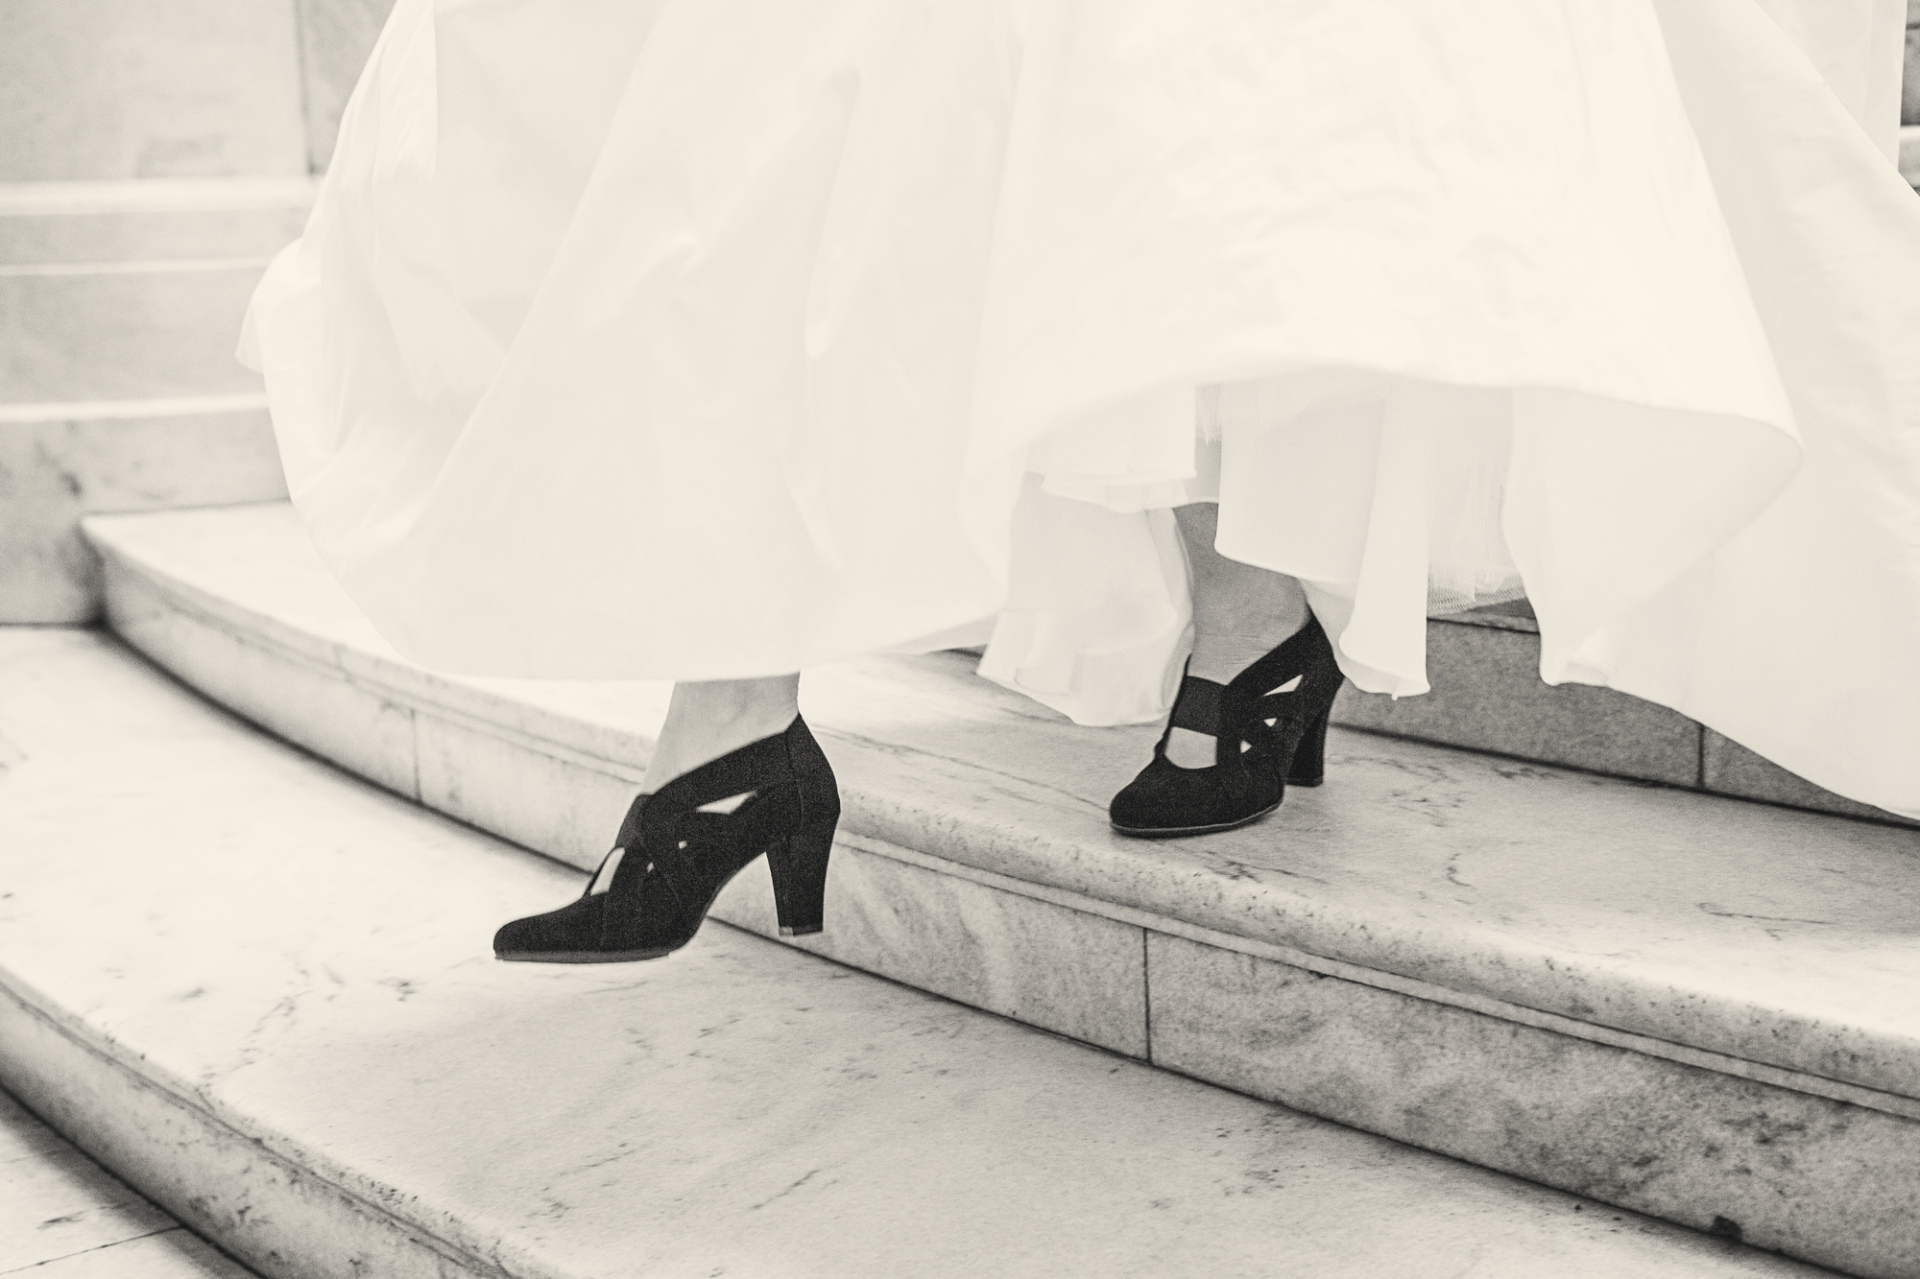 A bride shows off her shoes underneath her dress while walking down a staircase.